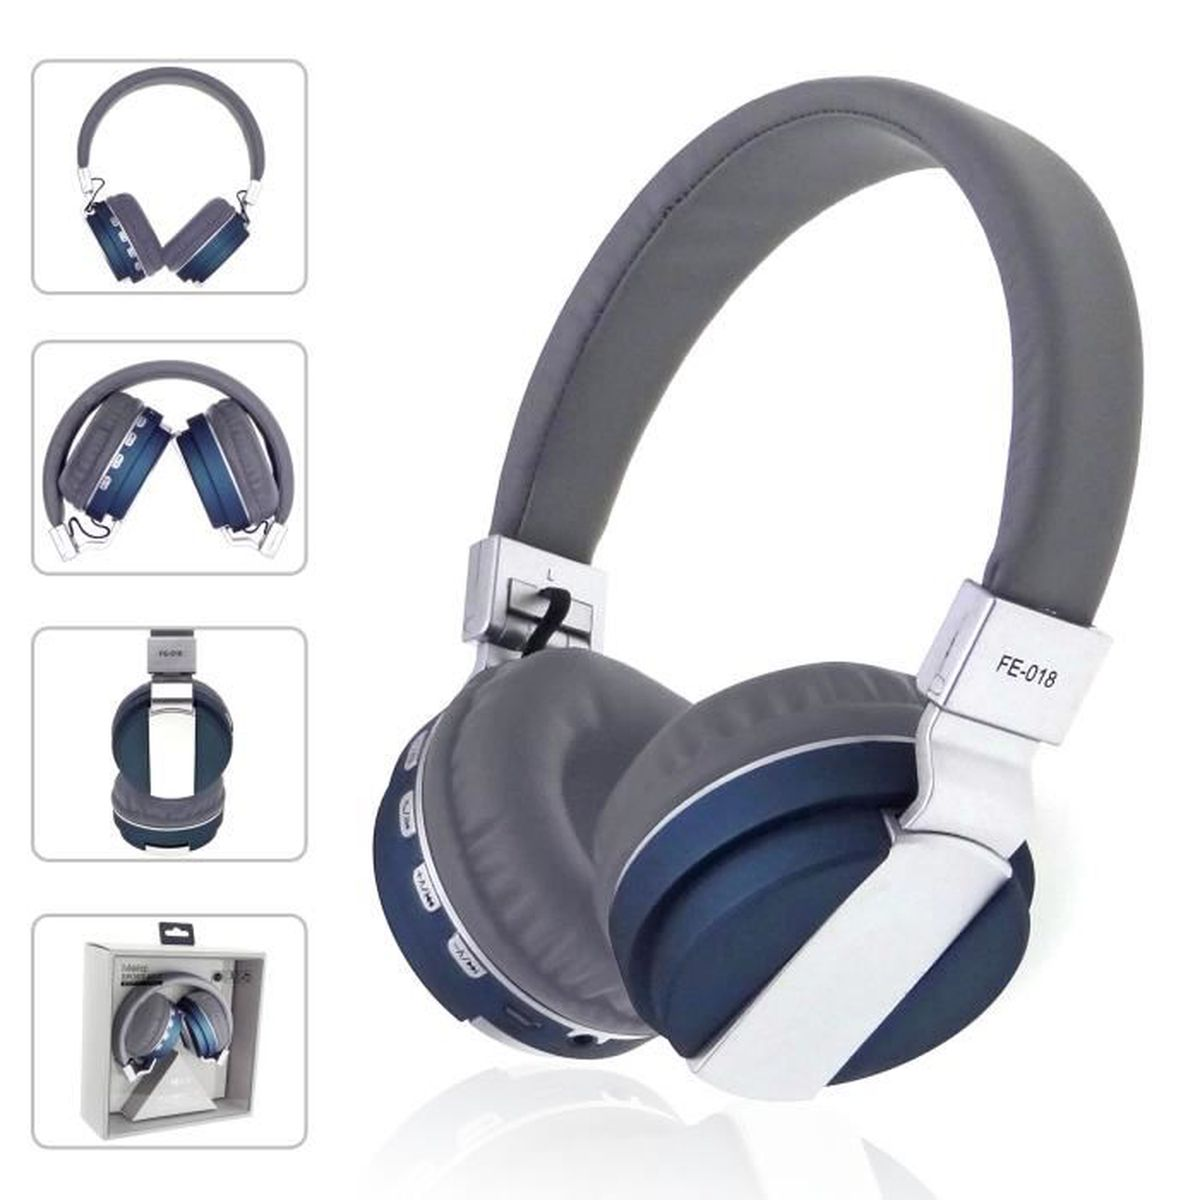 m tallique casque bluetooth v4 0 casque audio sans fil. Black Bedroom Furniture Sets. Home Design Ideas